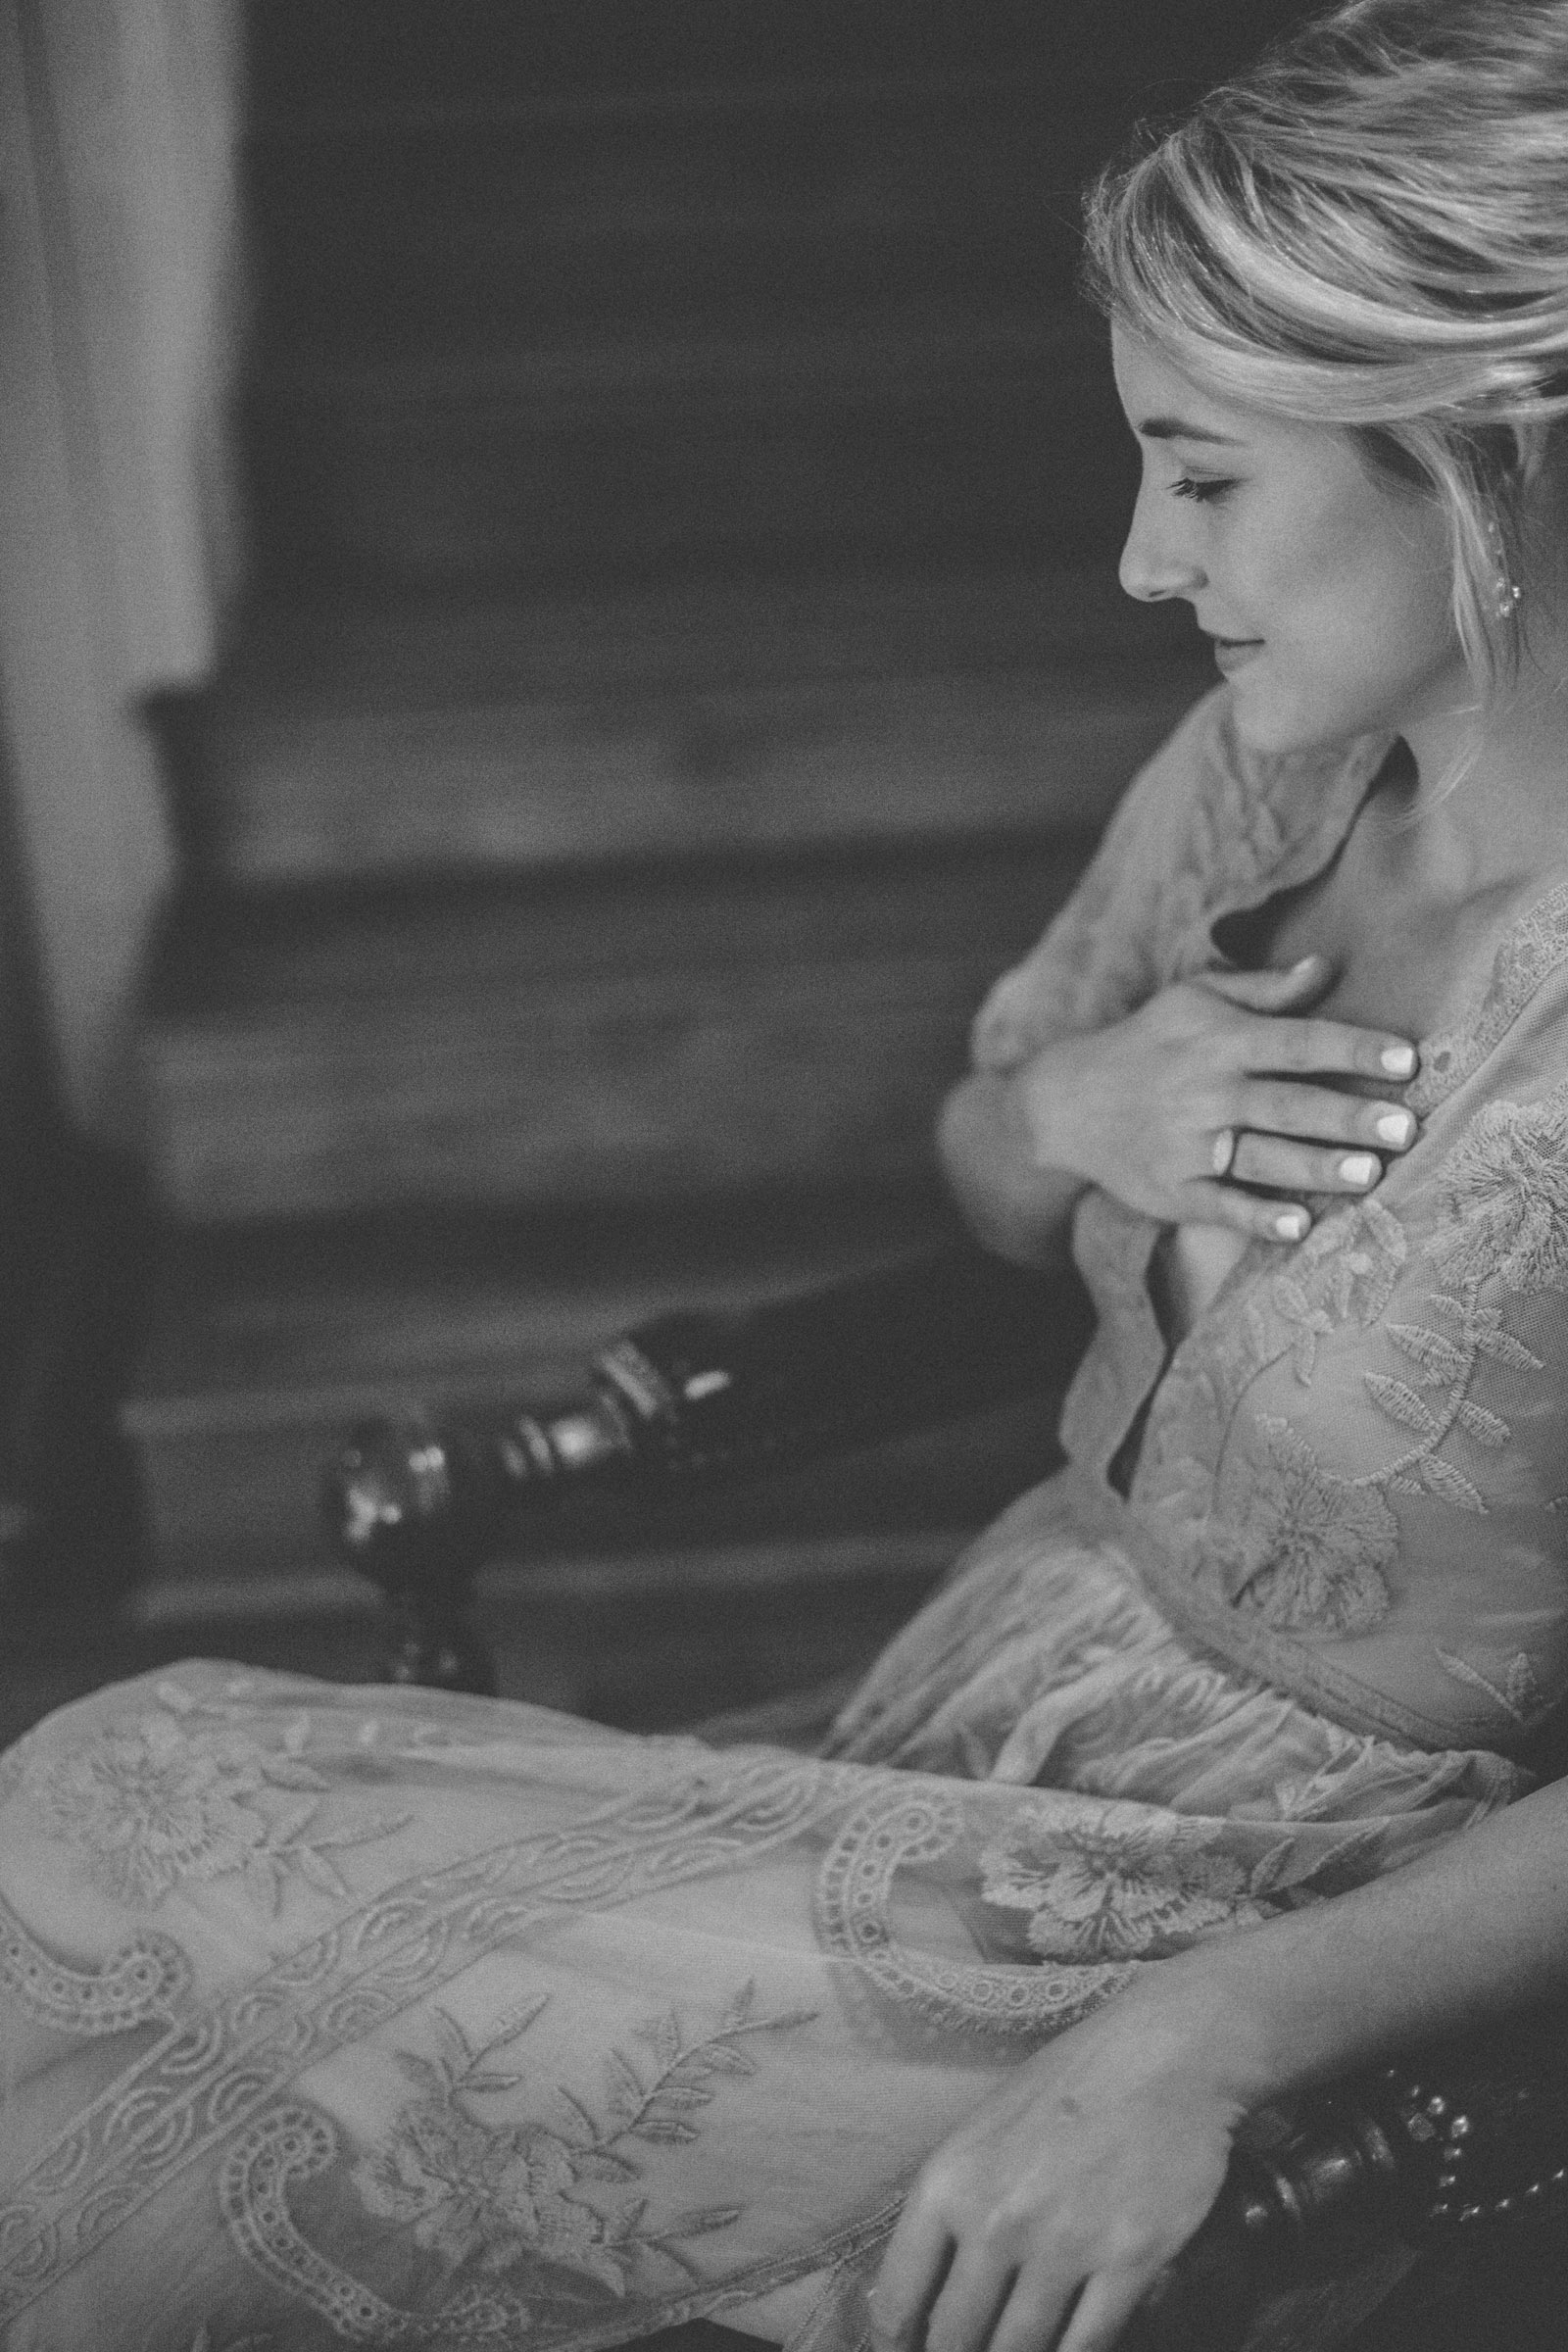 016-abstract-image-of-blonde-woman-getting-ready-for-her-wedding-and-gasping